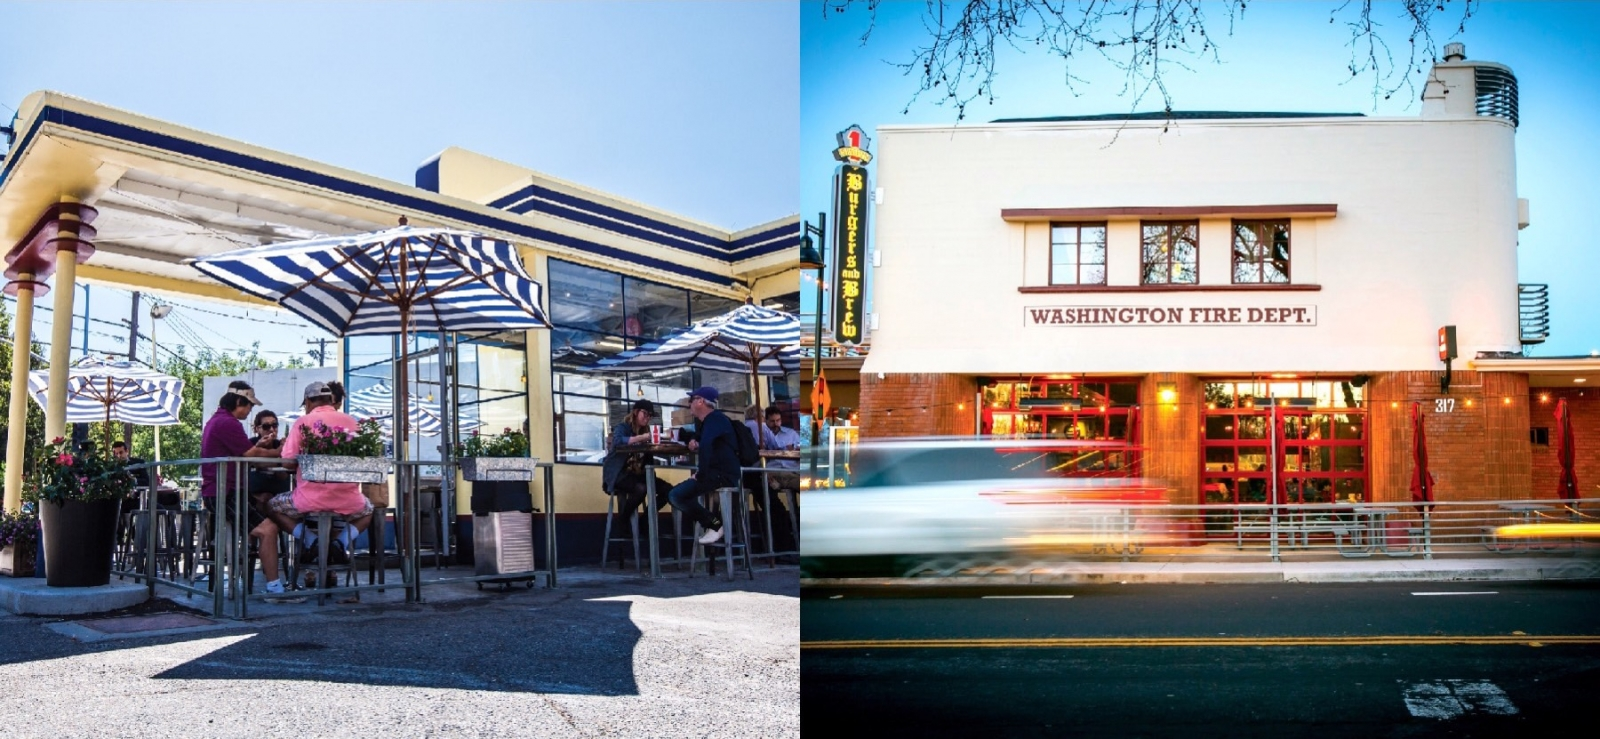 From left: D&S converted a gas station outside East Sacramento into Tako Korean BBQ in 2012; the rehabbed Washington Firehouse in West Sacramento is home to a Burgers & Brew and Station 1 jazz club (Tako photo by Nicholas Wray; Firehouse by Jeremy Sykes)